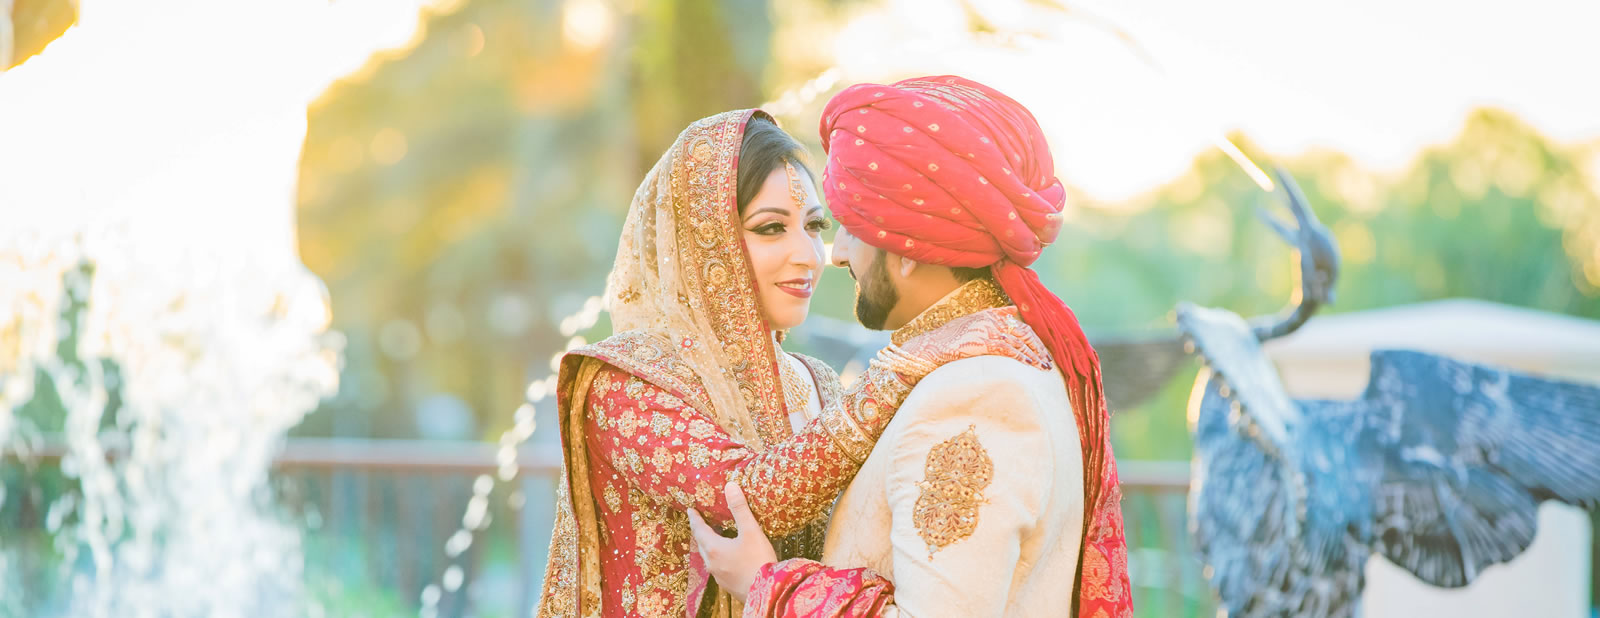 Indian newly weds staring into each others eyes while standing in front of fountain